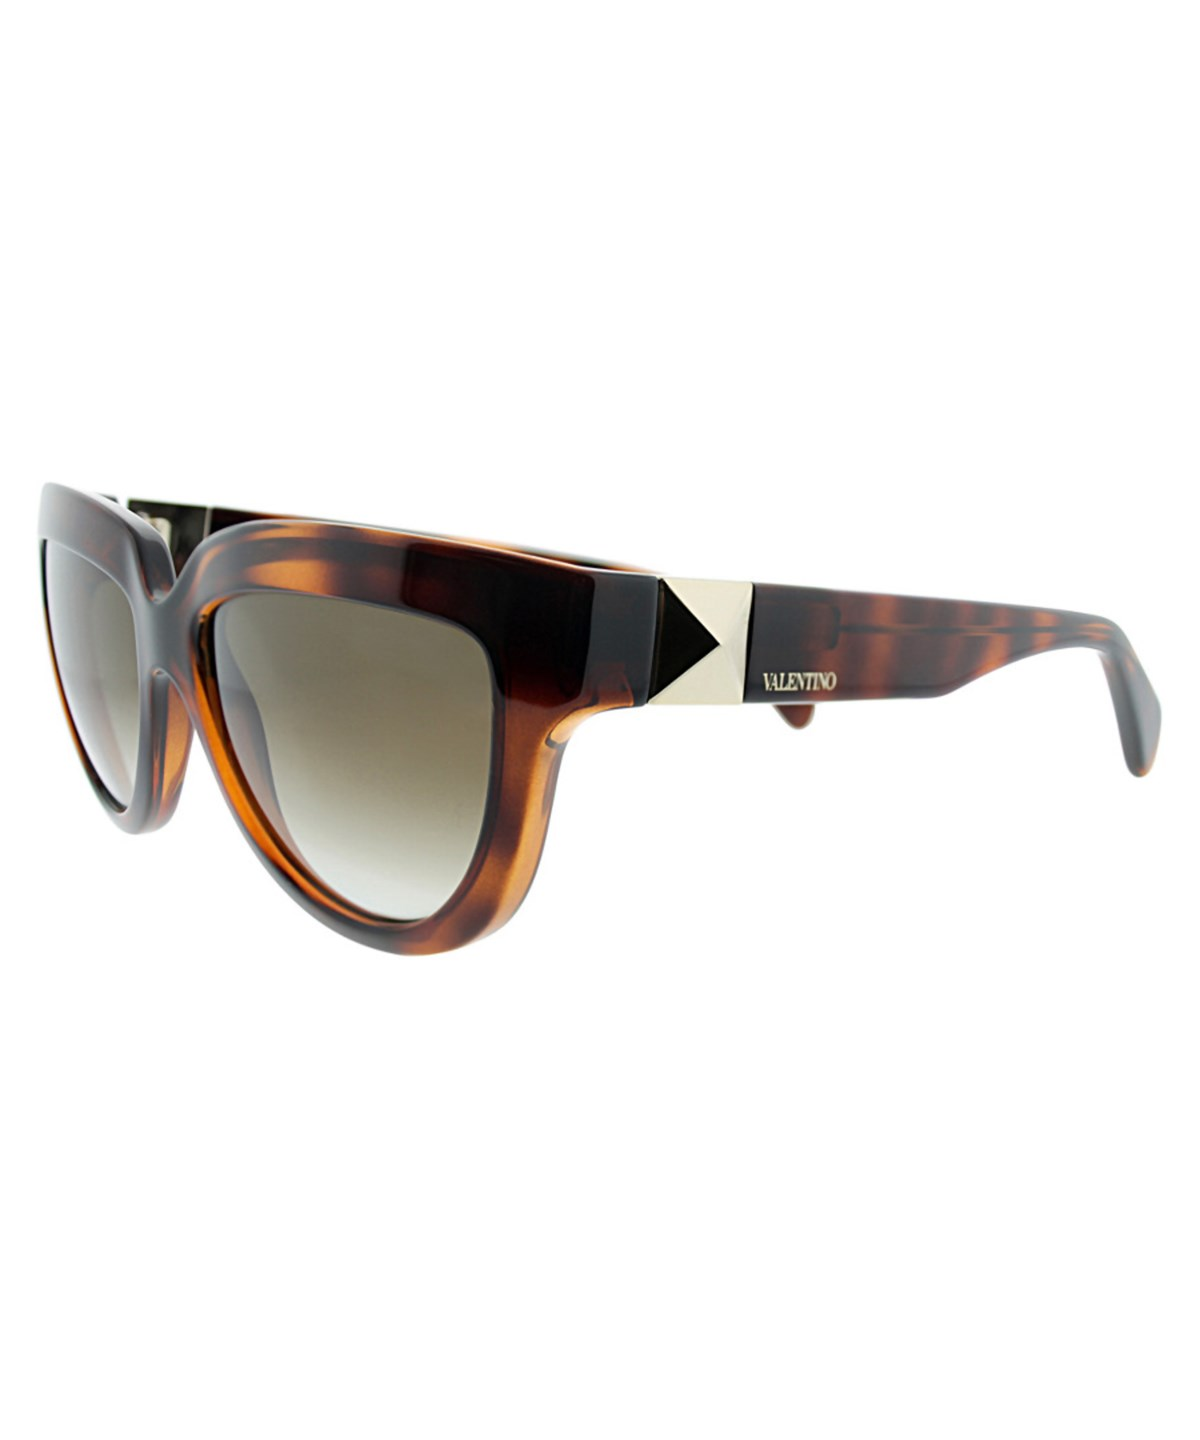 VALENTINO Women'S 694S_214 Sunglasses' in Multi